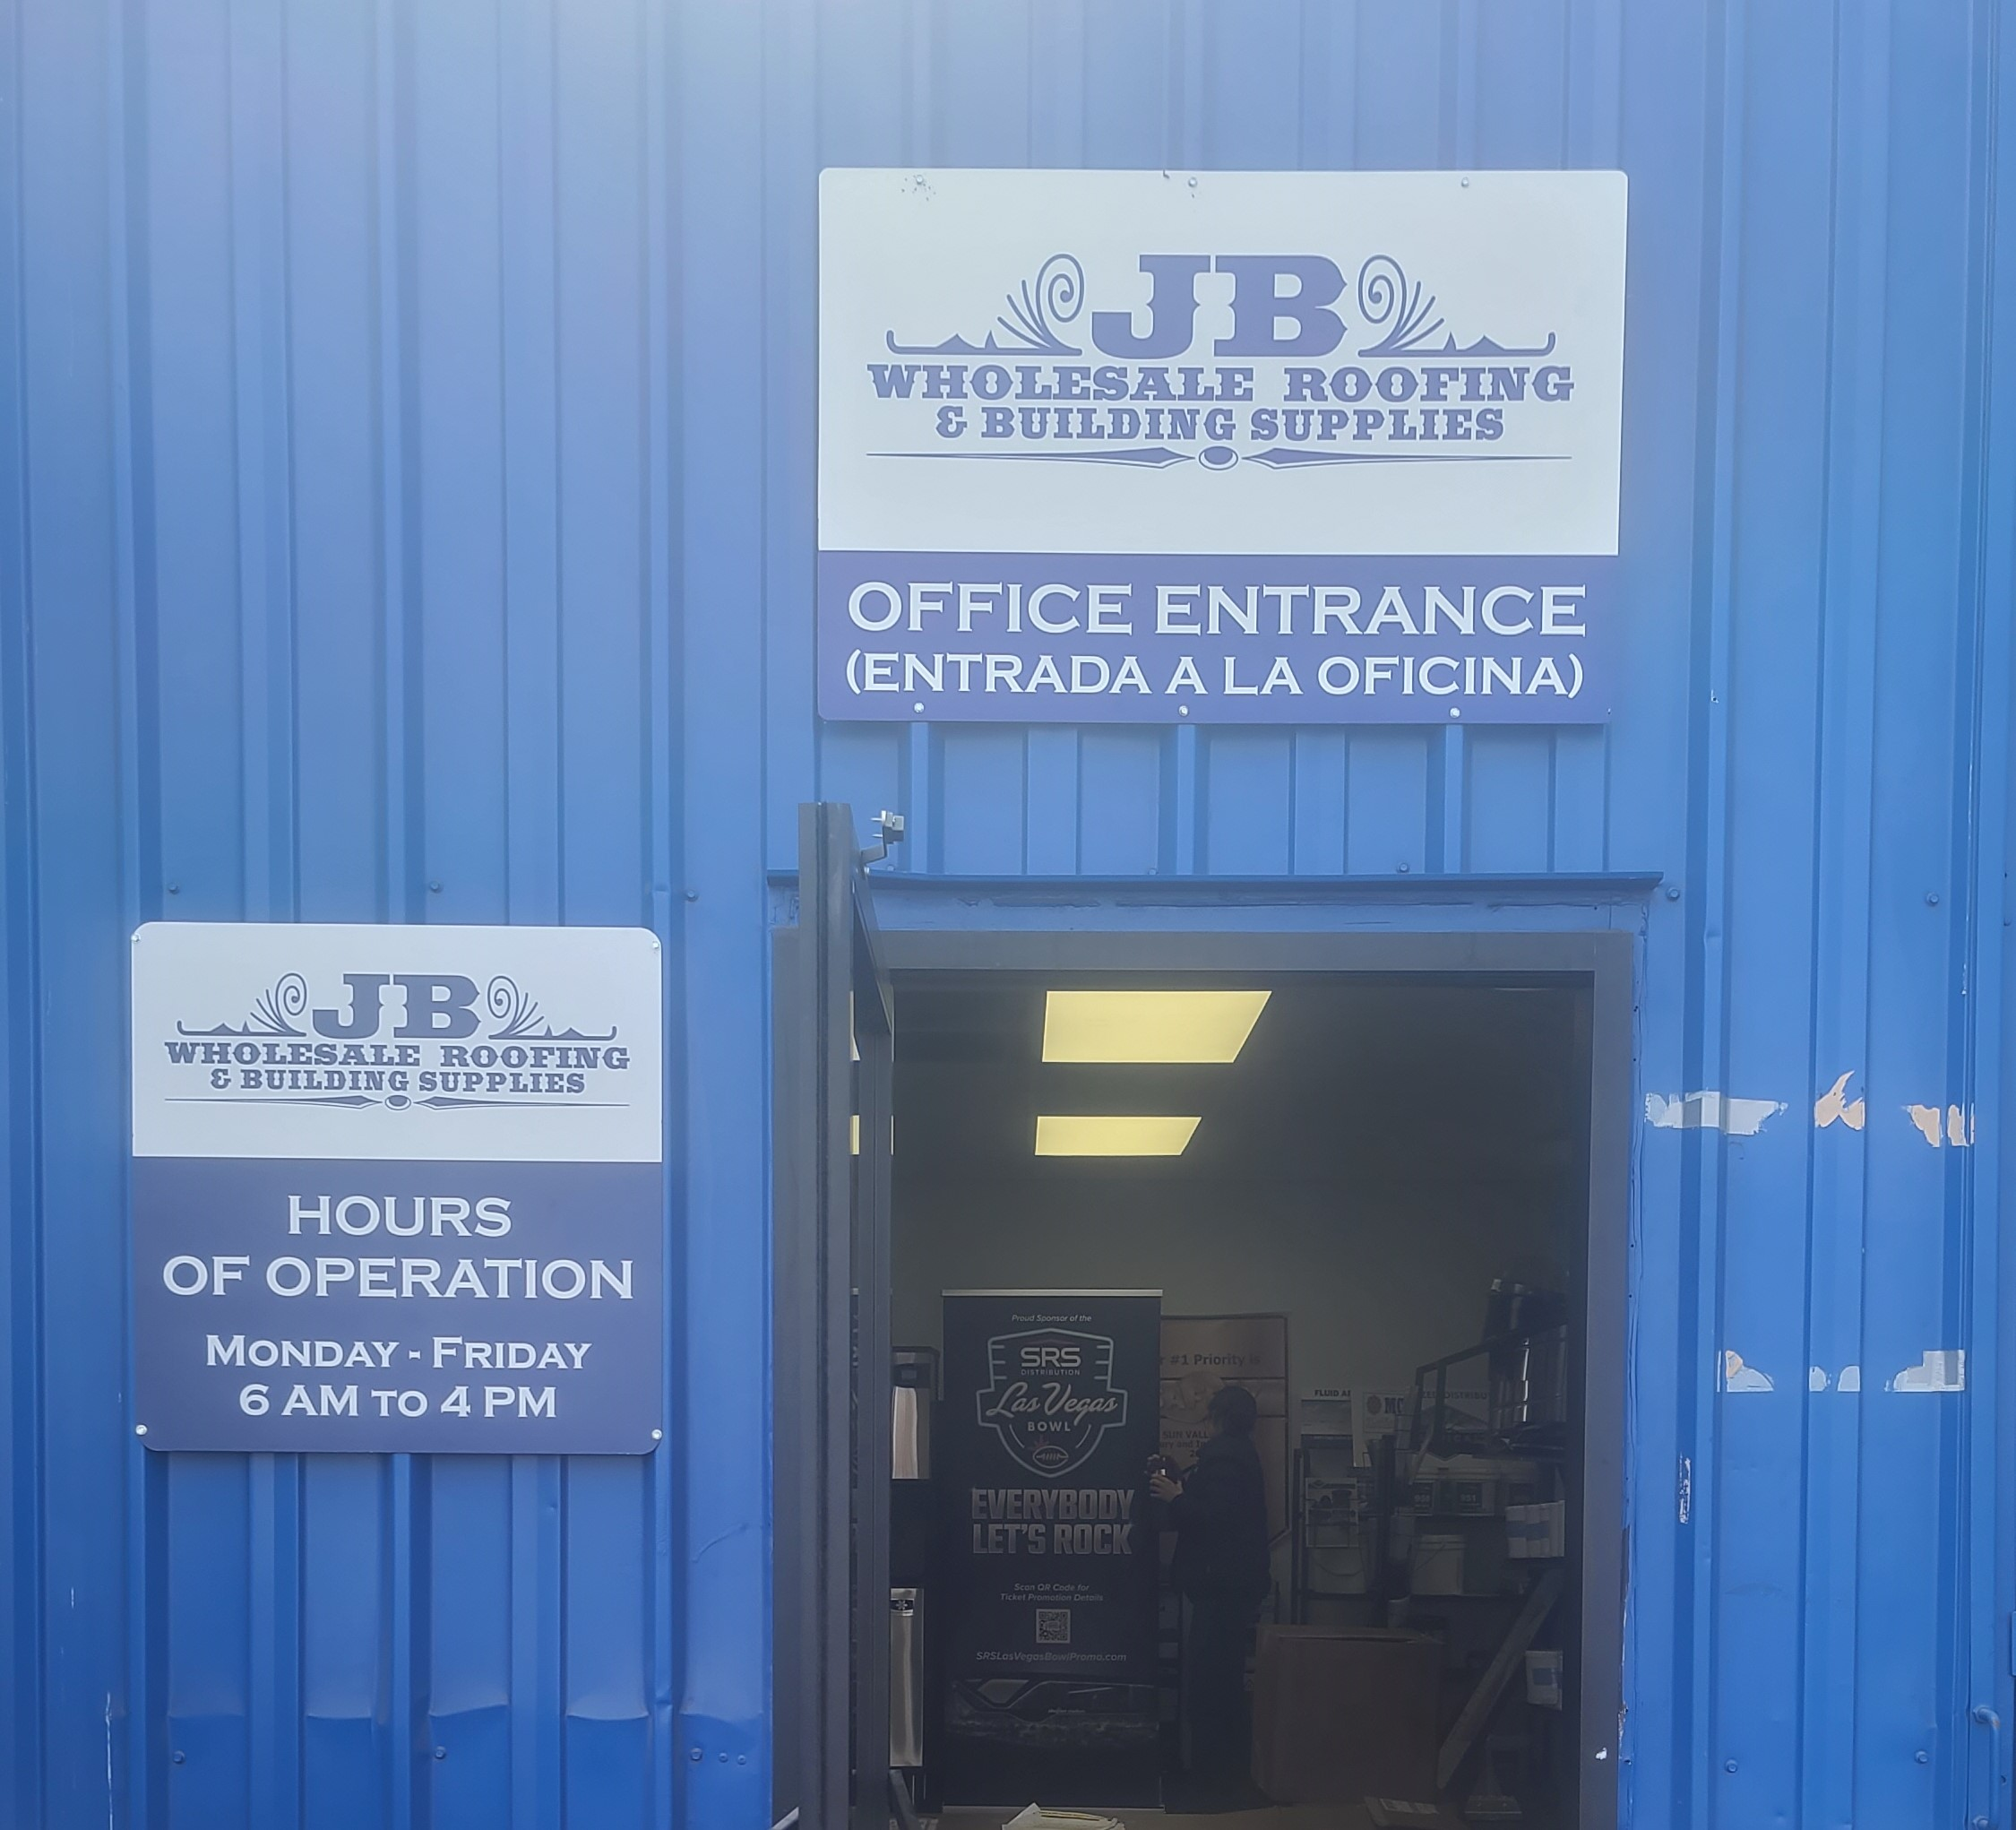 These are the office exterior signs for JB Wholesale Roofing & Building Supplies' Sun Valley location.